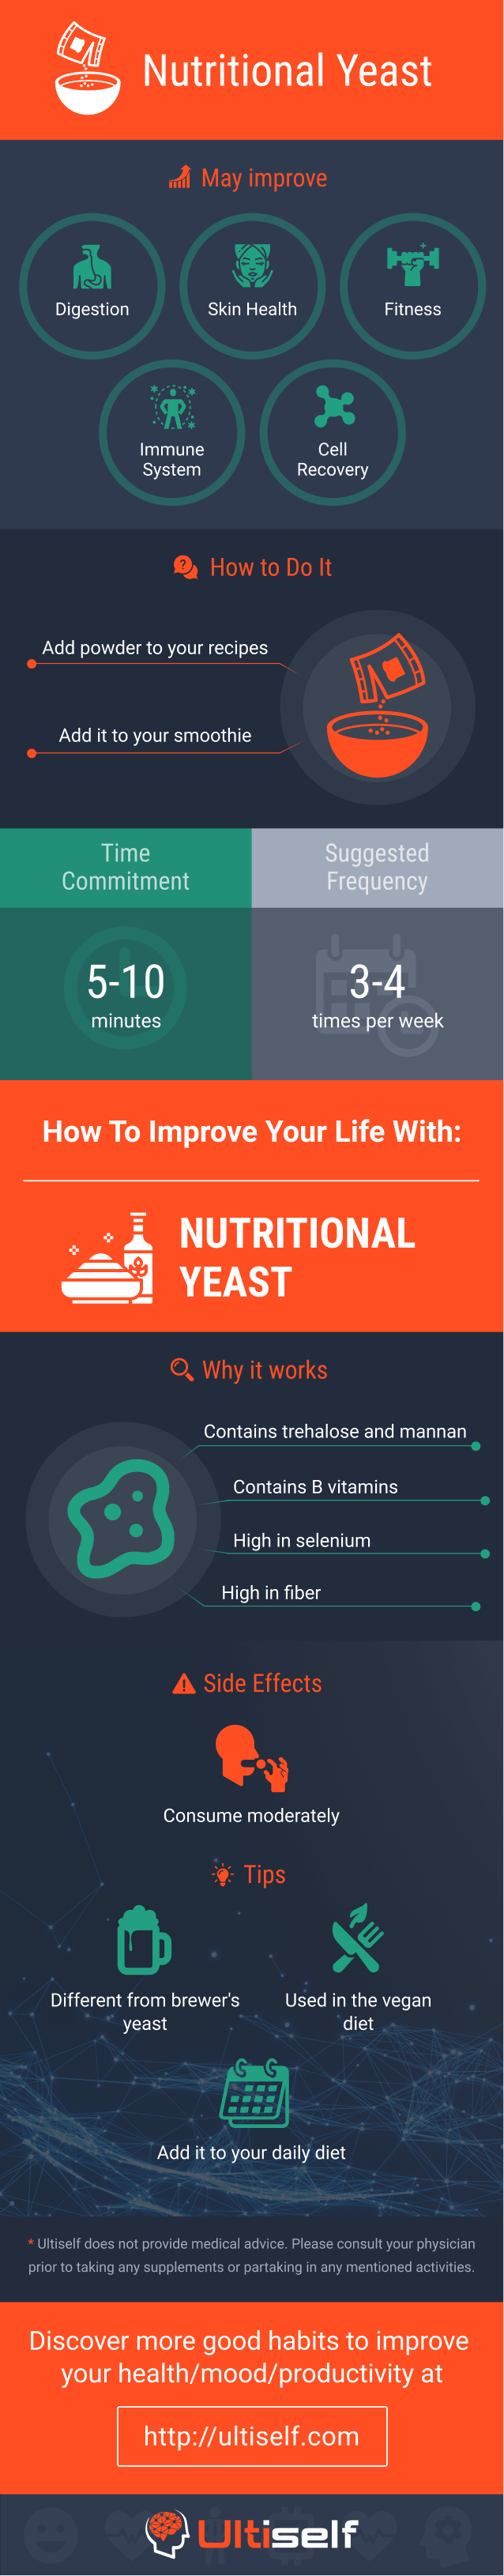 Nutritional Yeast infographic